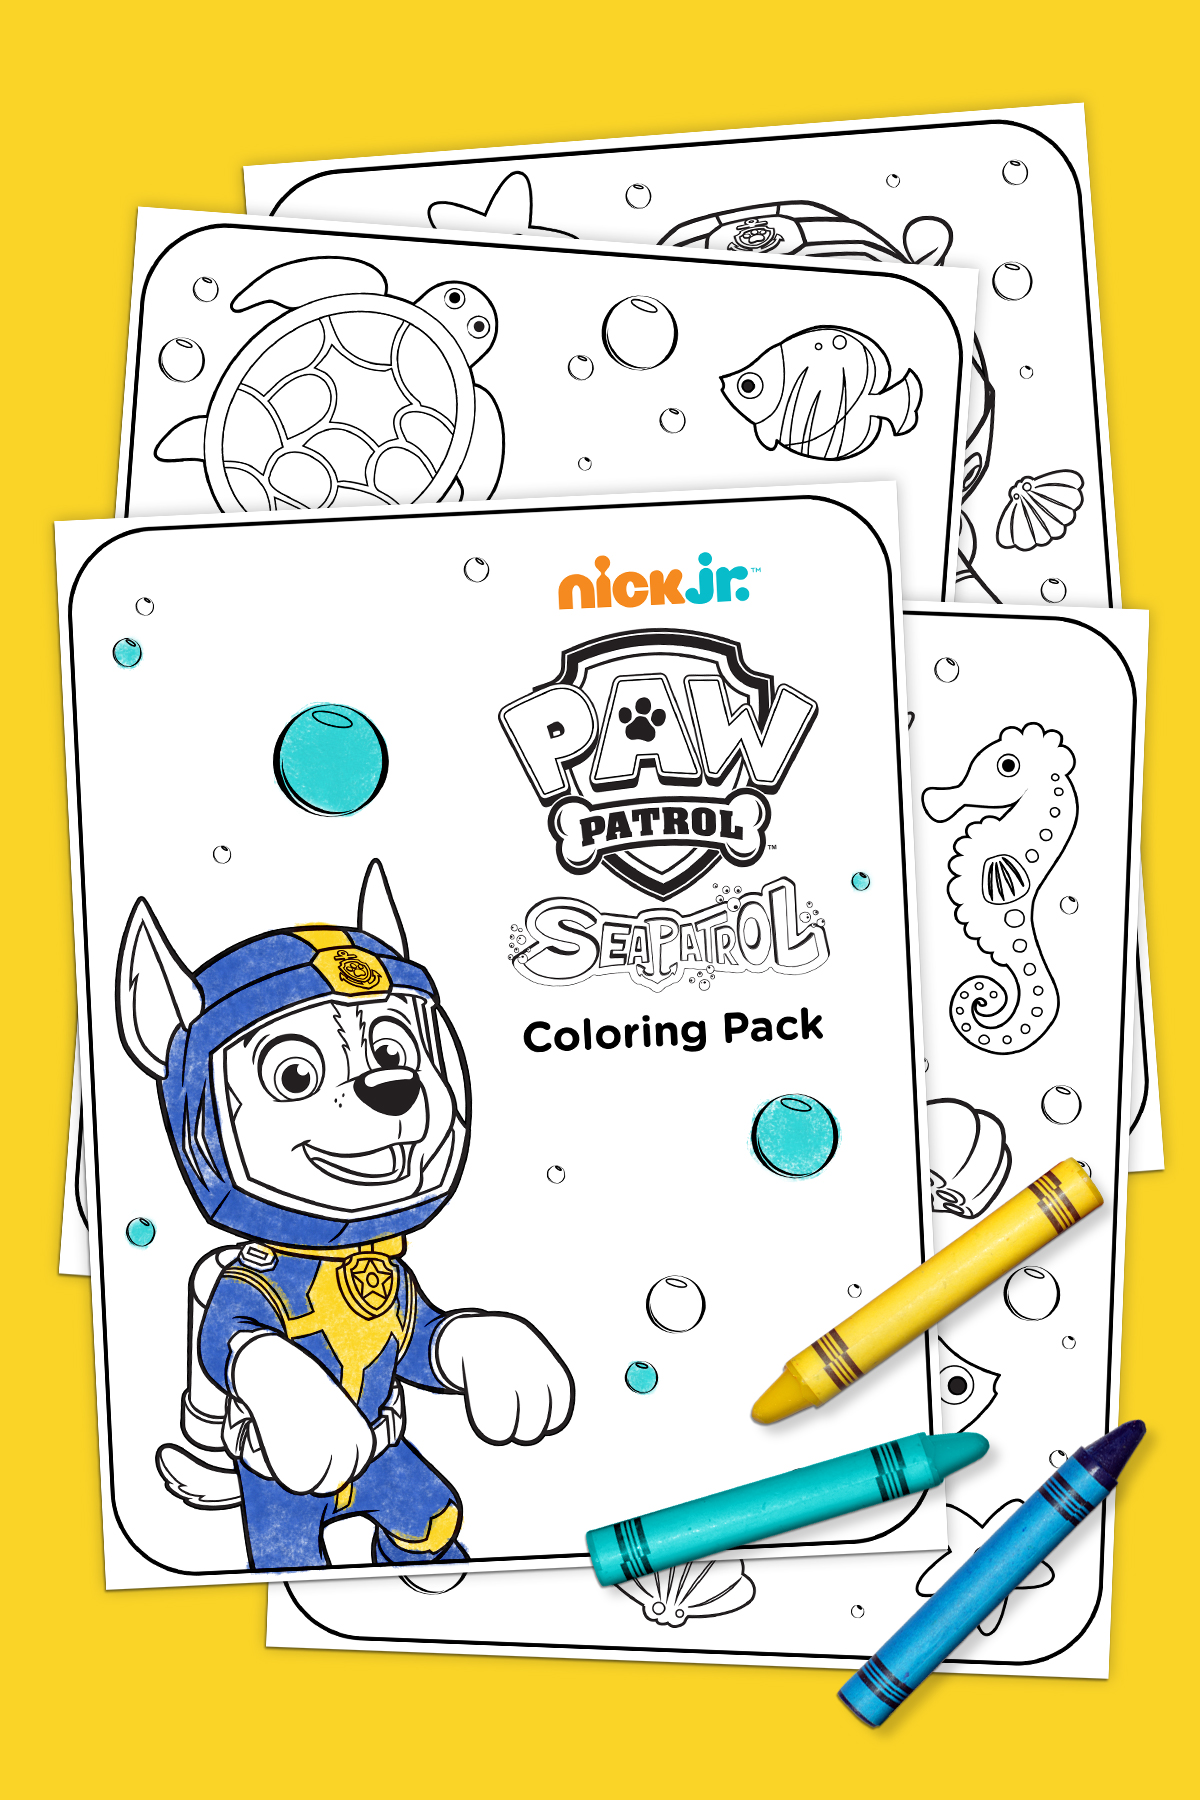 sea patrol coloring pack coloring pages